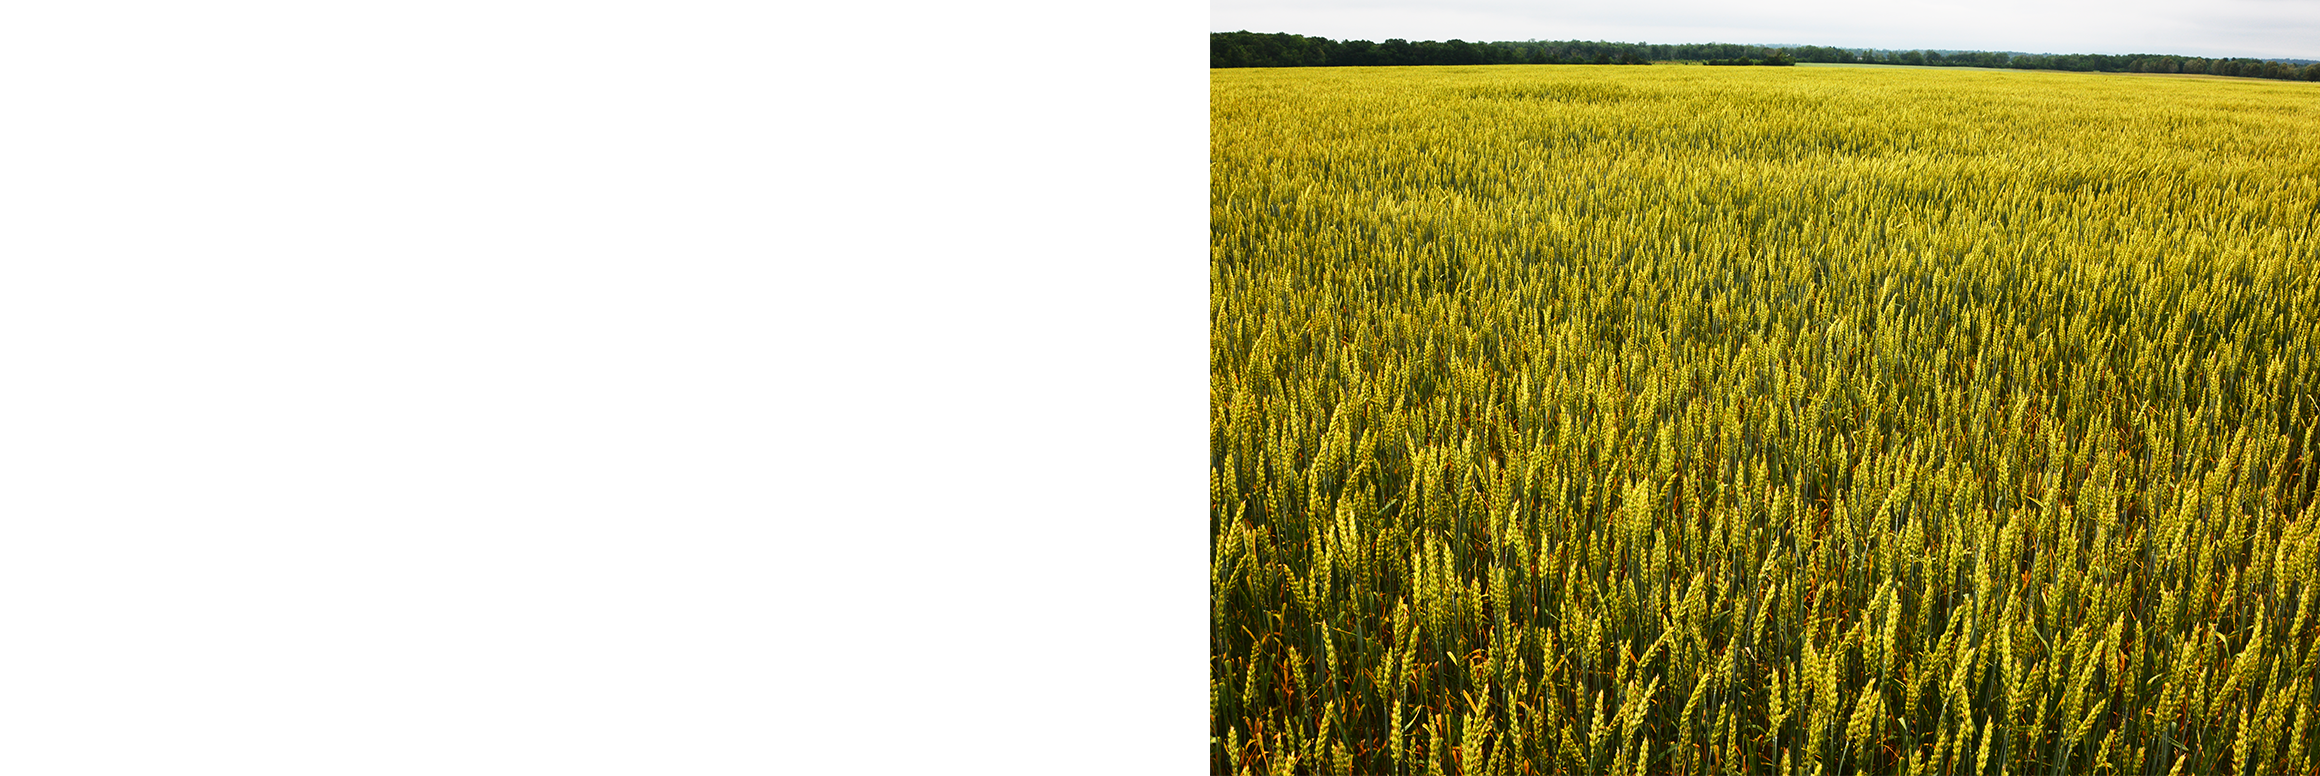 Land clipart wheat field. Grain png crc stone